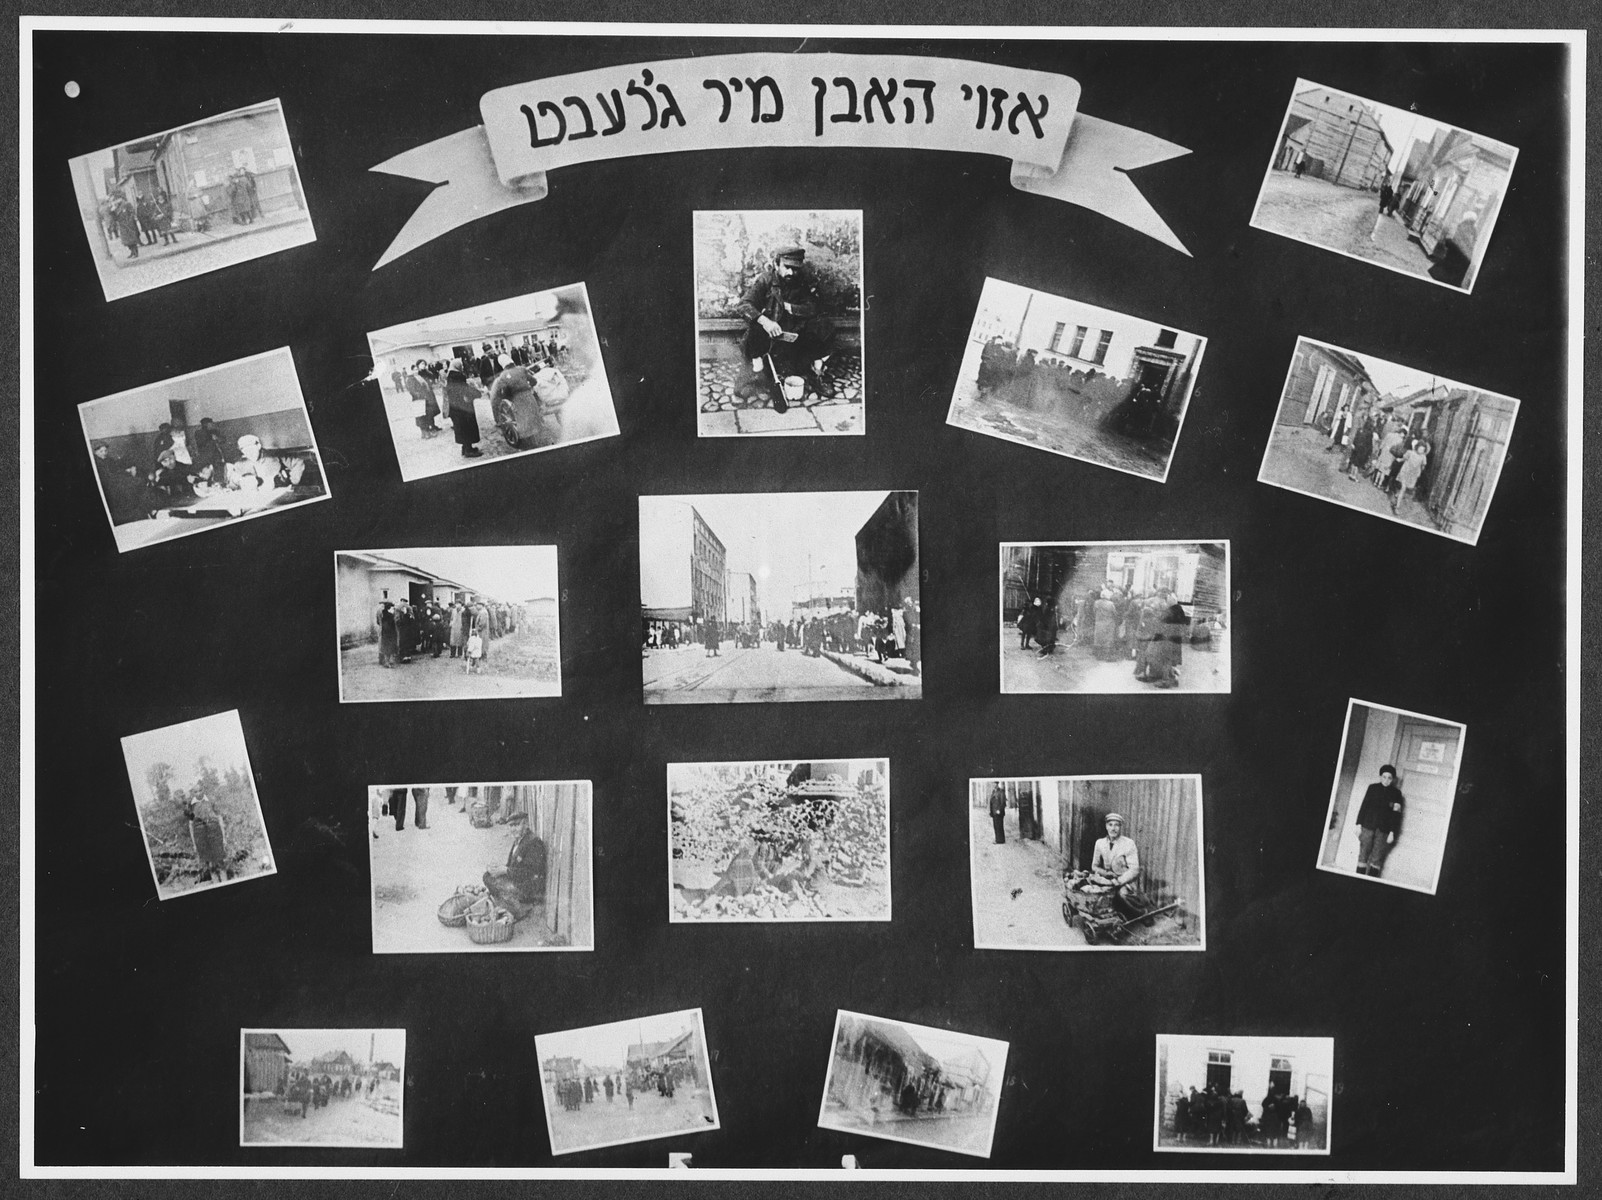 """Display panel entitled """"So we lived"""" from a photo exhibition on the Holocaust created by photographer George Kaddish in a displaced persons' camp.  The exhibition consisted both of photographs that he shot in the Kovno ghetto as well as other photographs he collected from other ghettos and camps."""